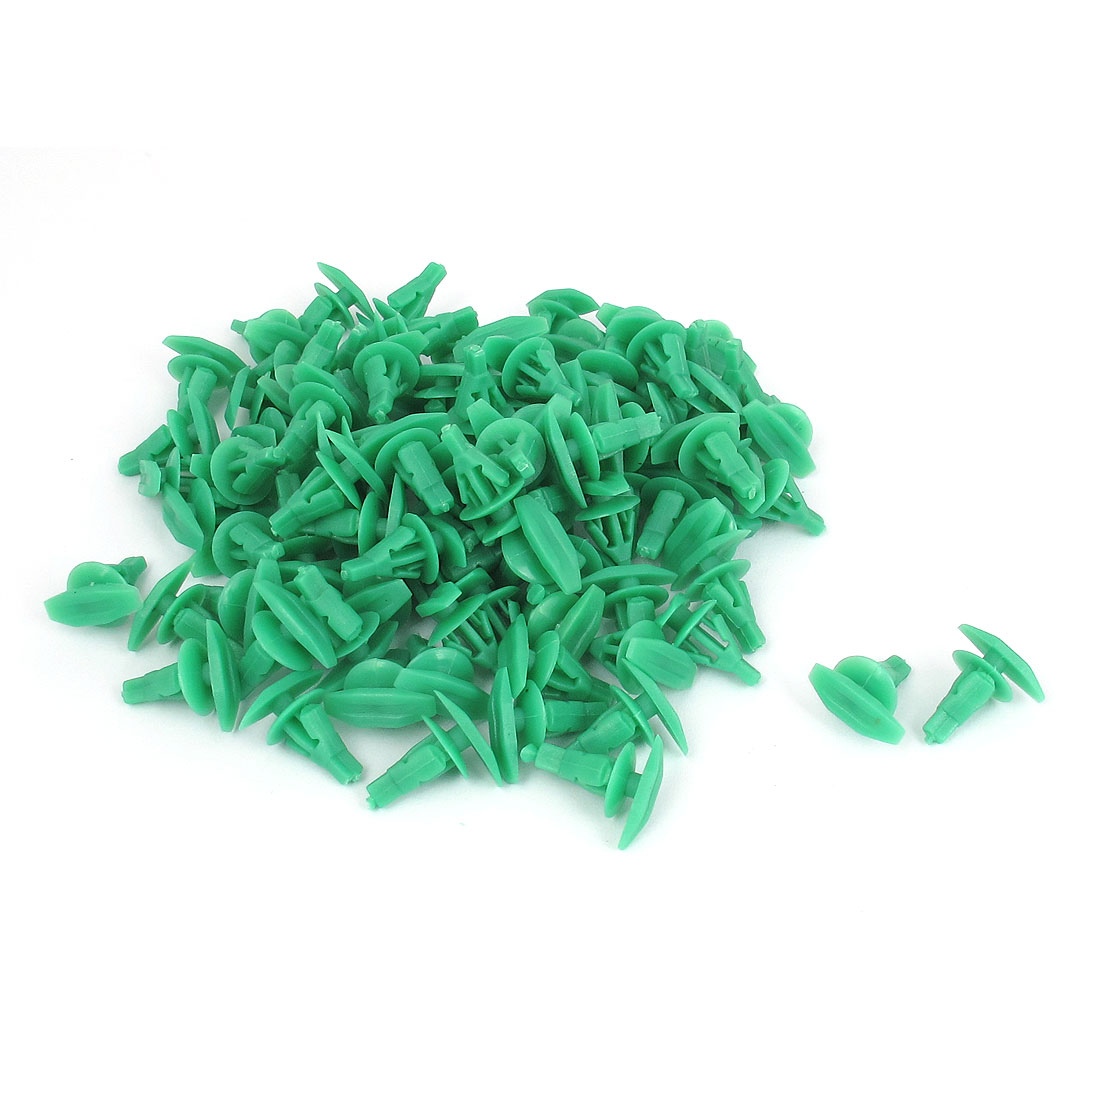 Car Door Trim Fender Bumper Plastic Rivets Fastener Retainer Clip Green 100 Pcs